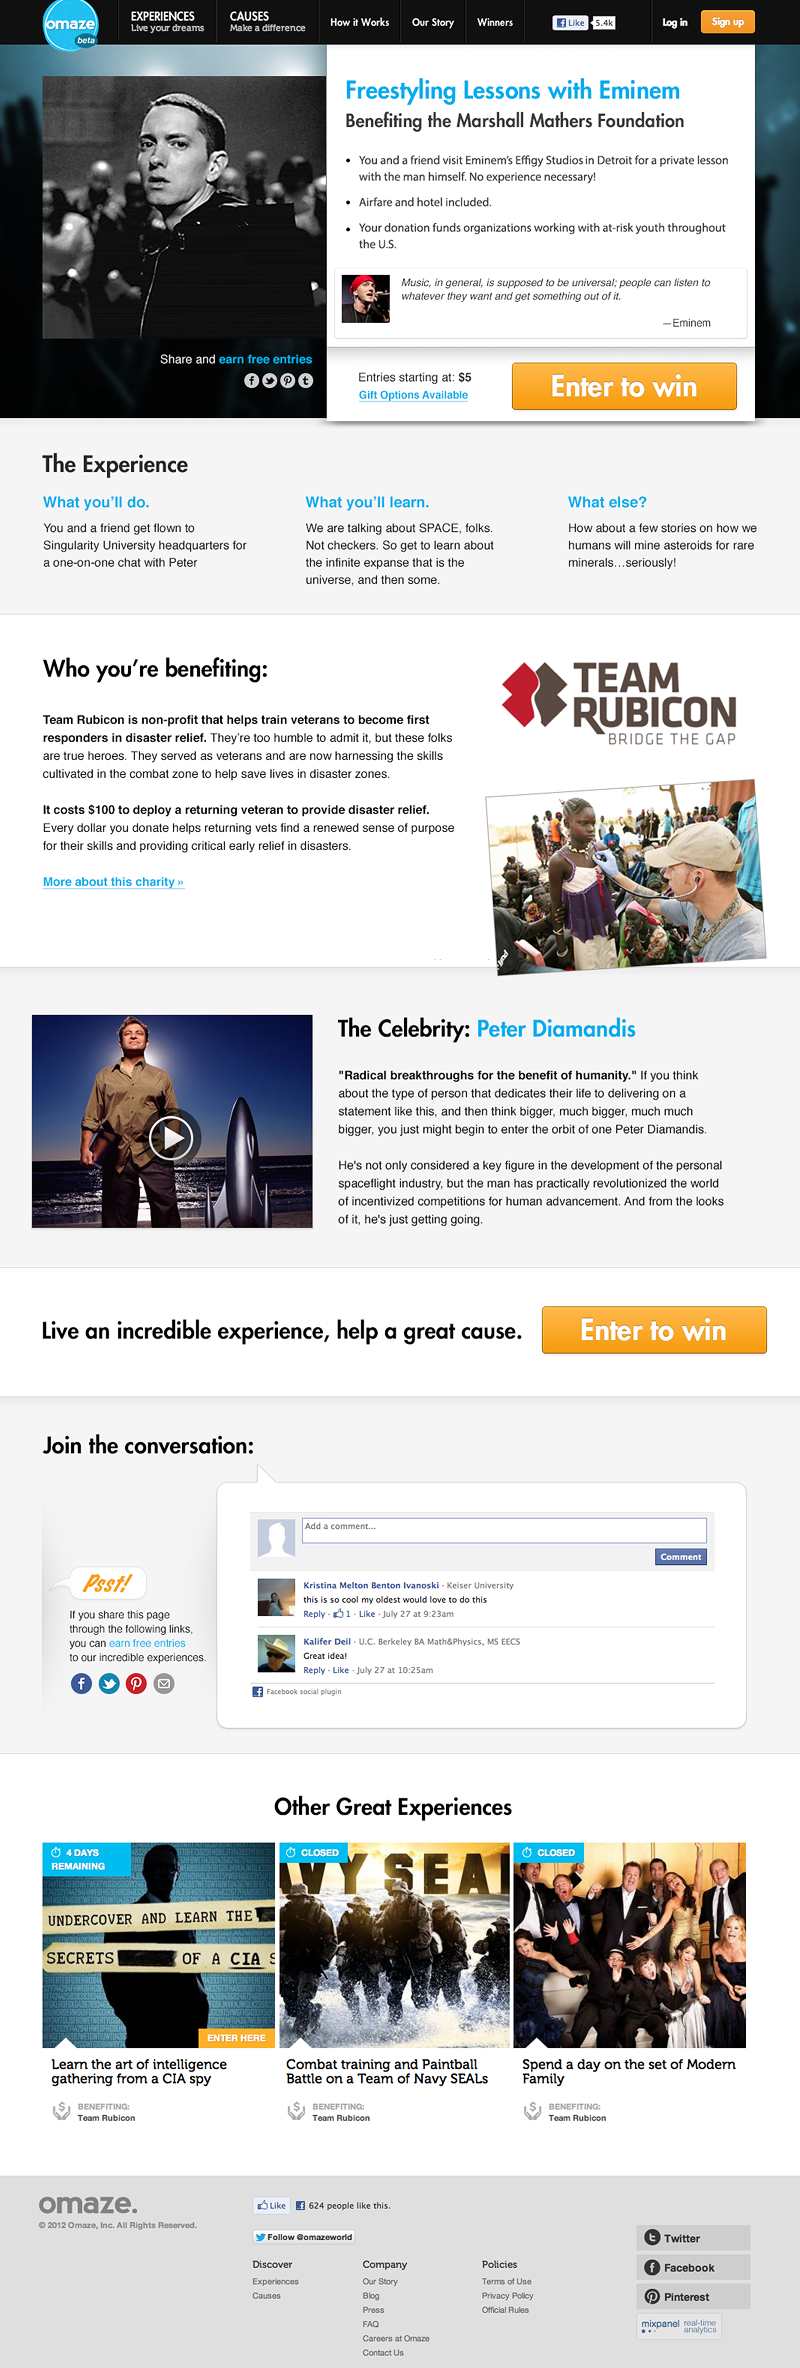 omaze-product-page-redesign-full-page